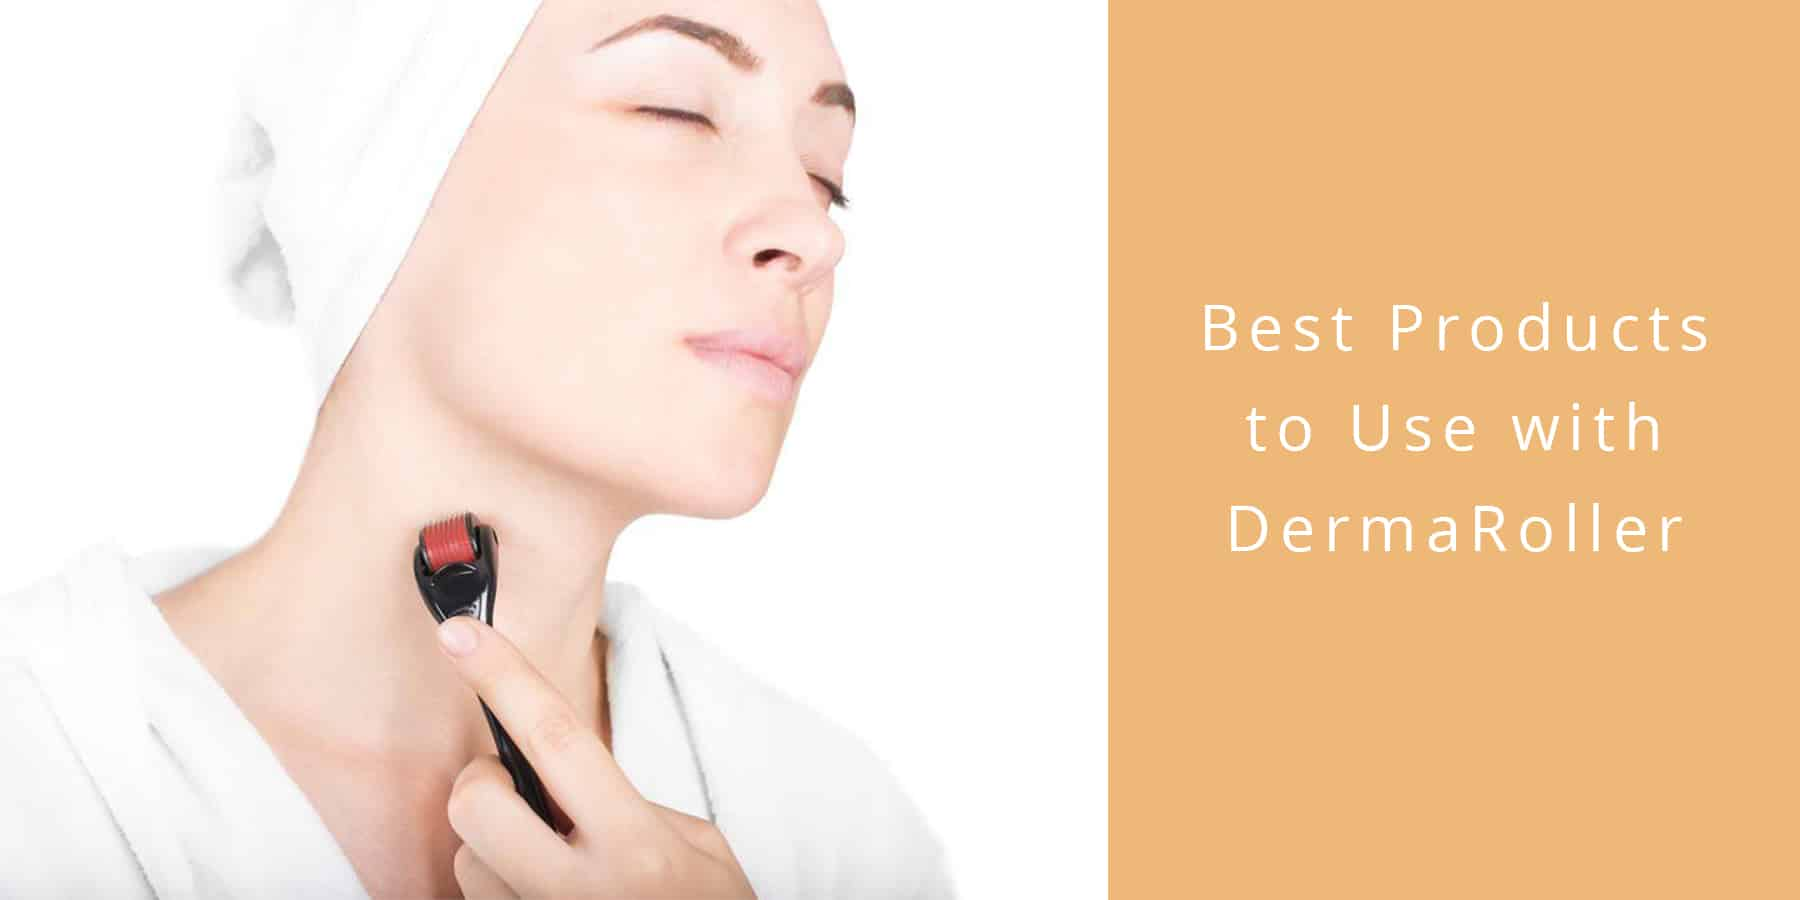 How To Use A Dermaroller T Derma Roller 540 Needles Skin Face Scar Acne Microneedles 10mm 8 Days Post No Makeup From Clearing Scars